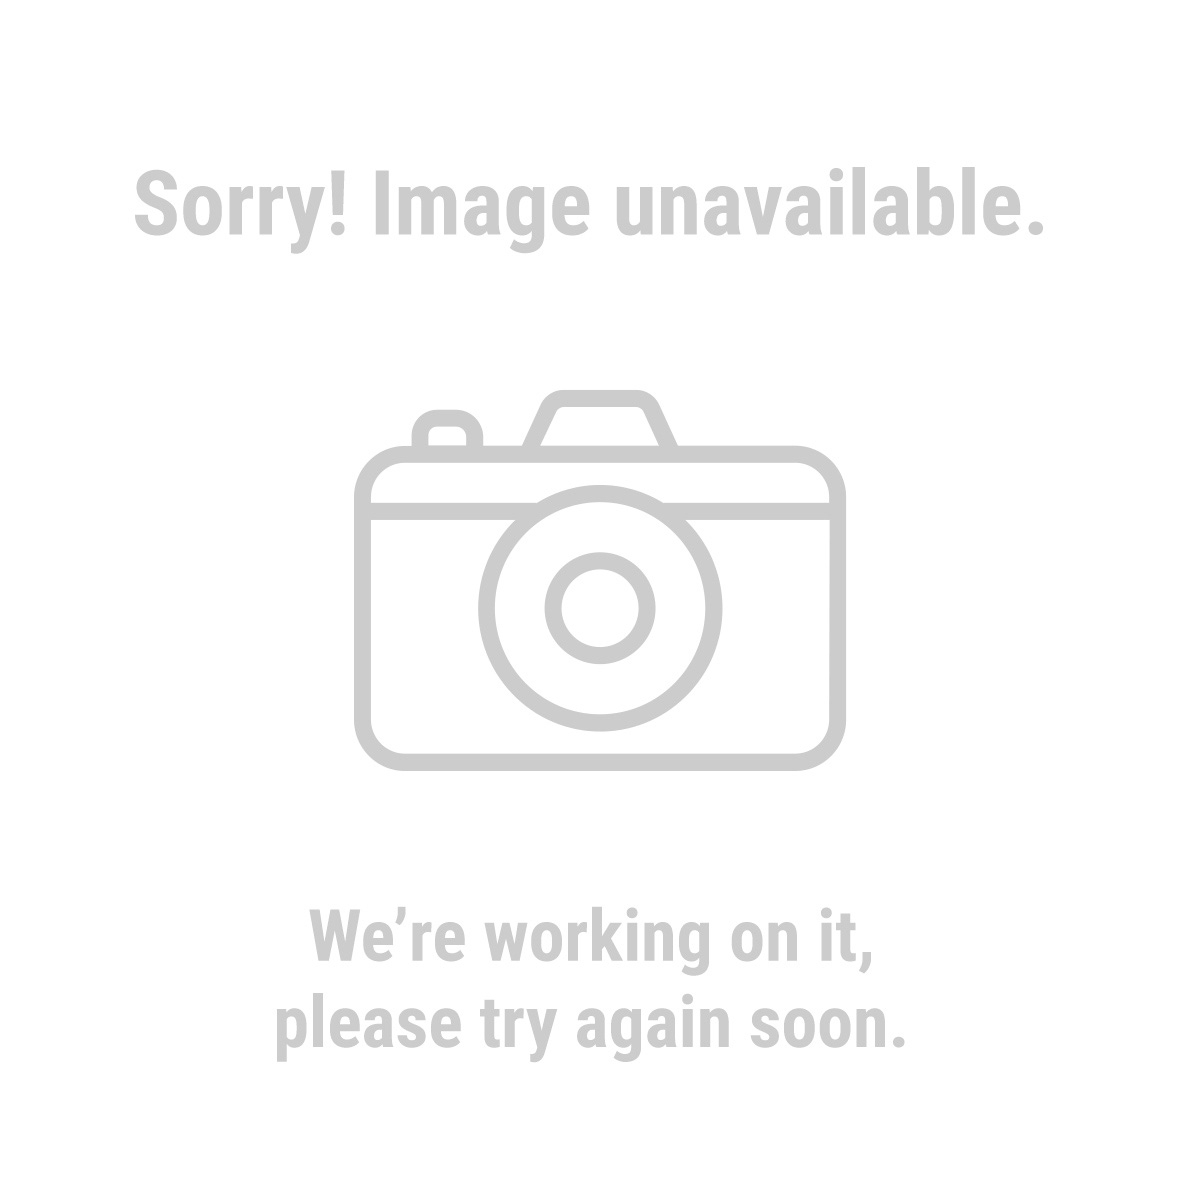 Western Safety Gloves 93640 Mechanic's Gloves, Large